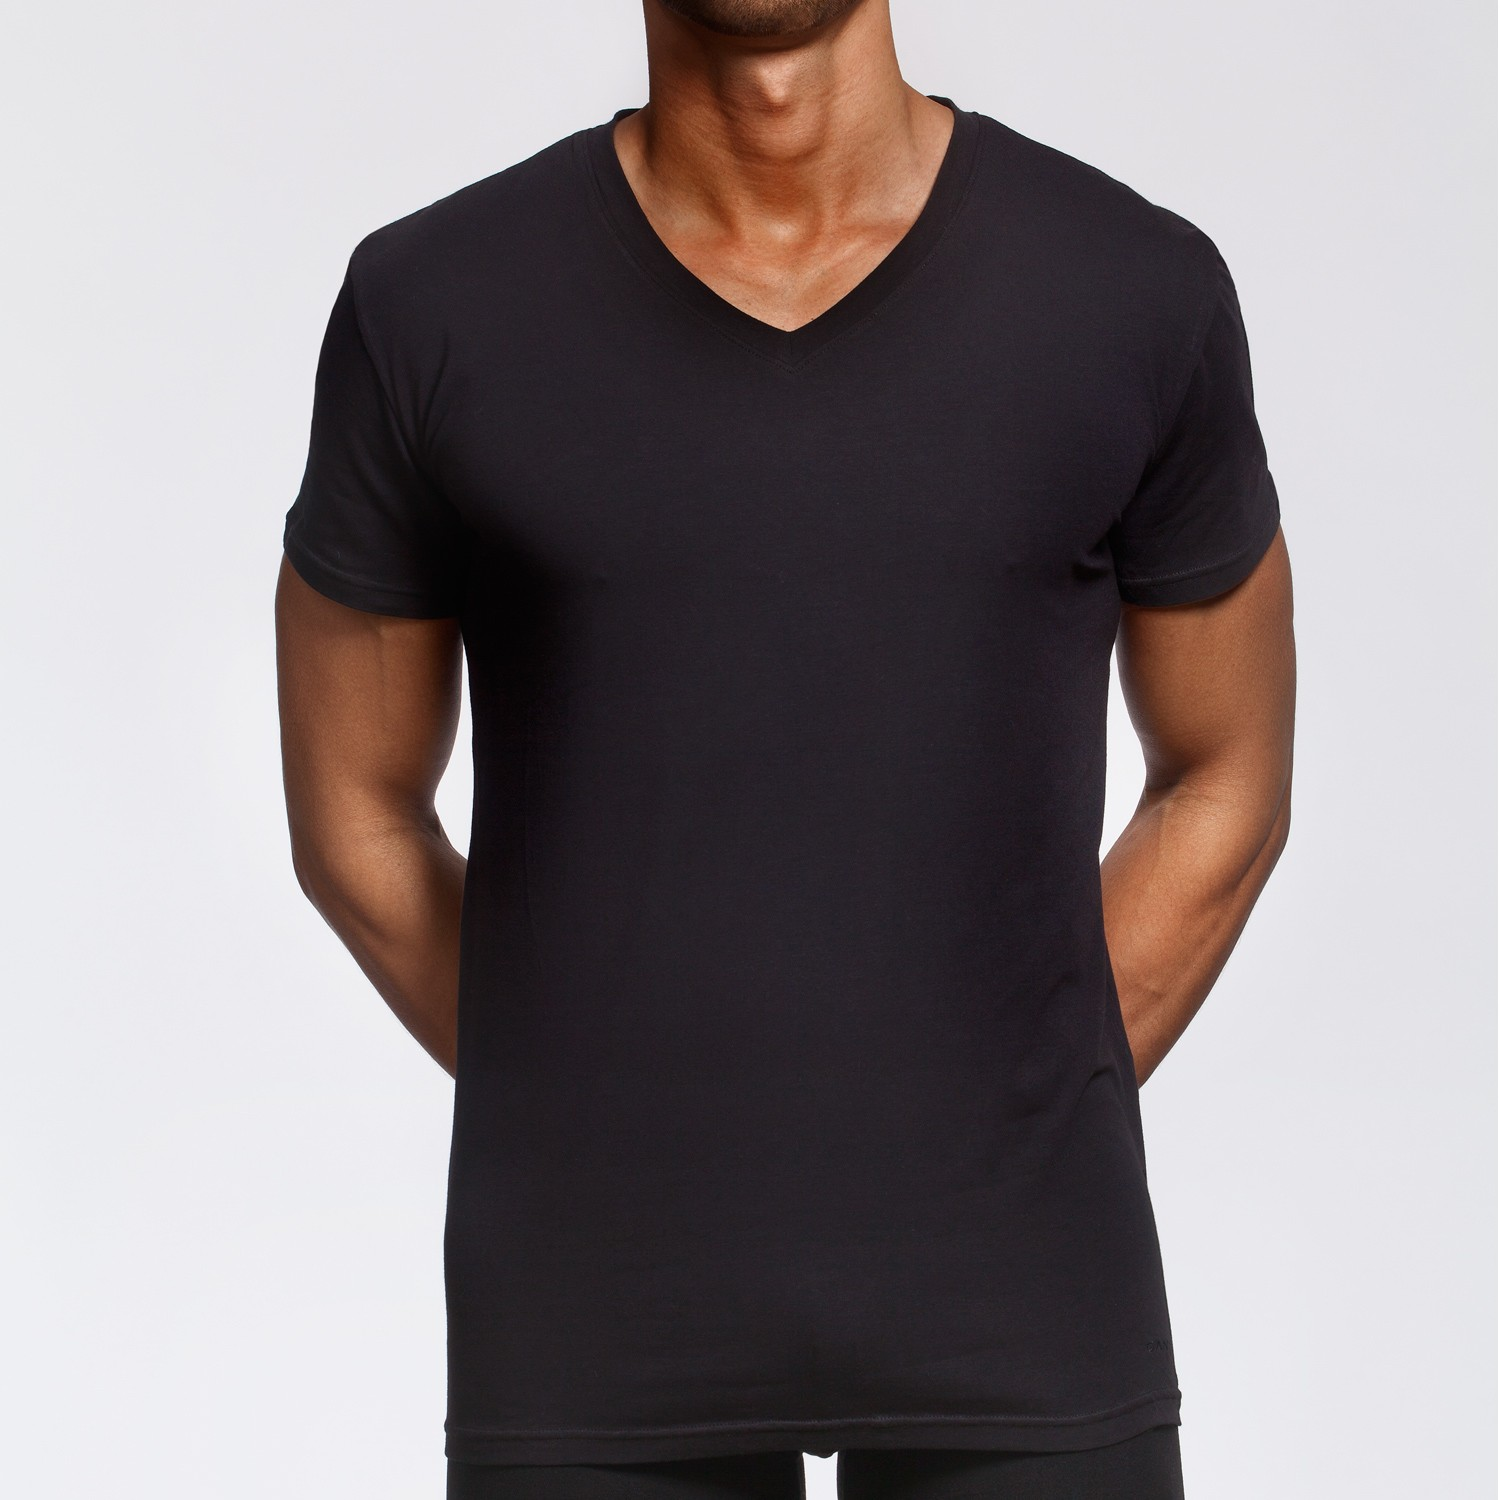 Gant premium basic cs t shirt v neck black t shirts V neck black t shirt